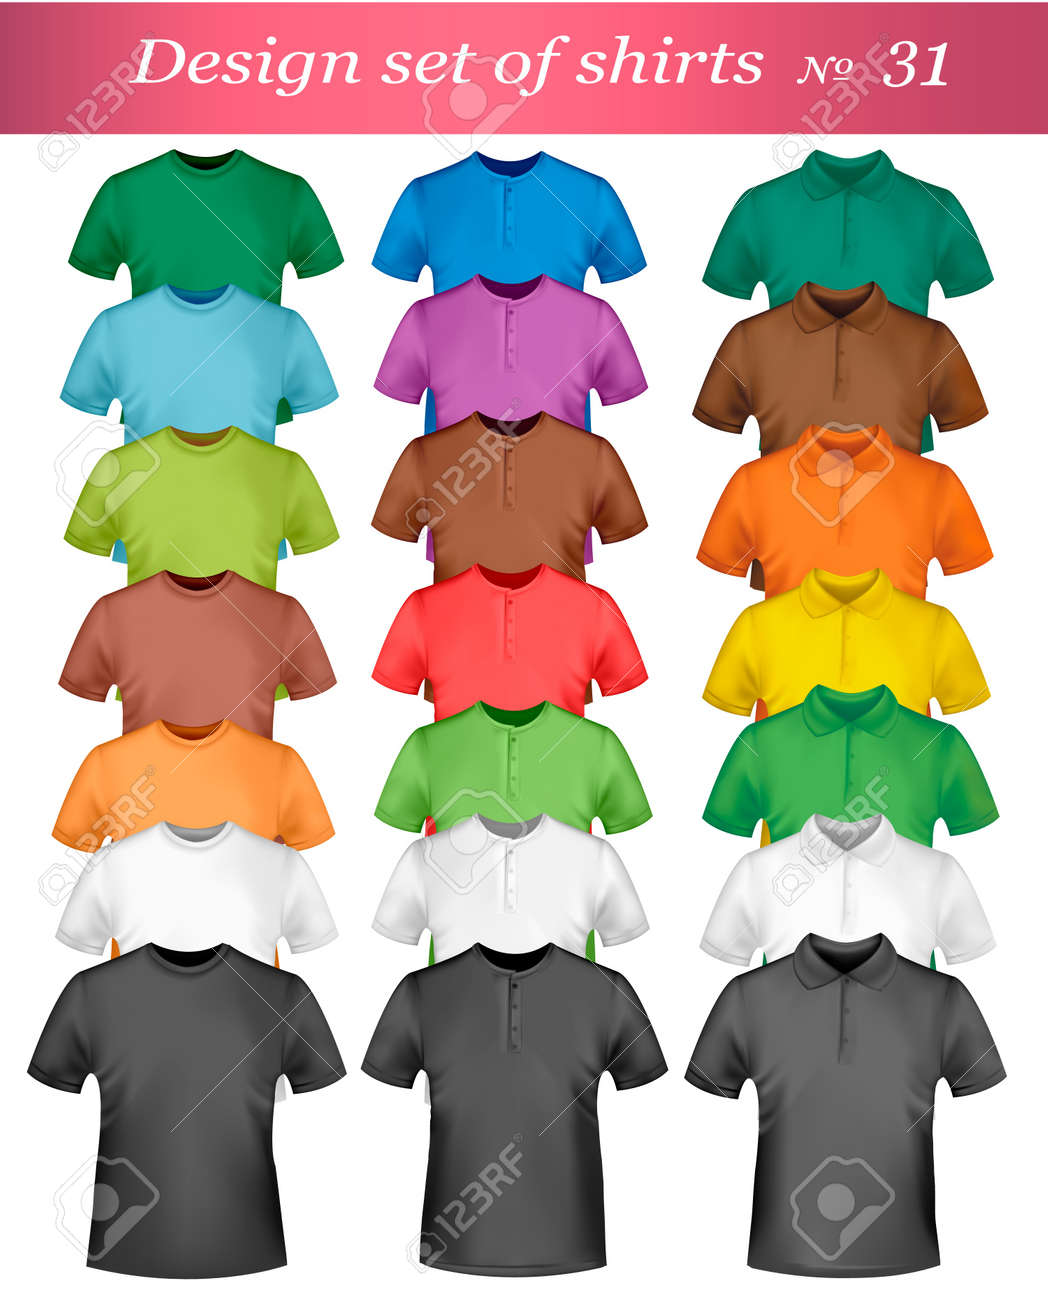 Black and colored t-shirts. Photo-realistic illustration. Stock Vector - 8791709